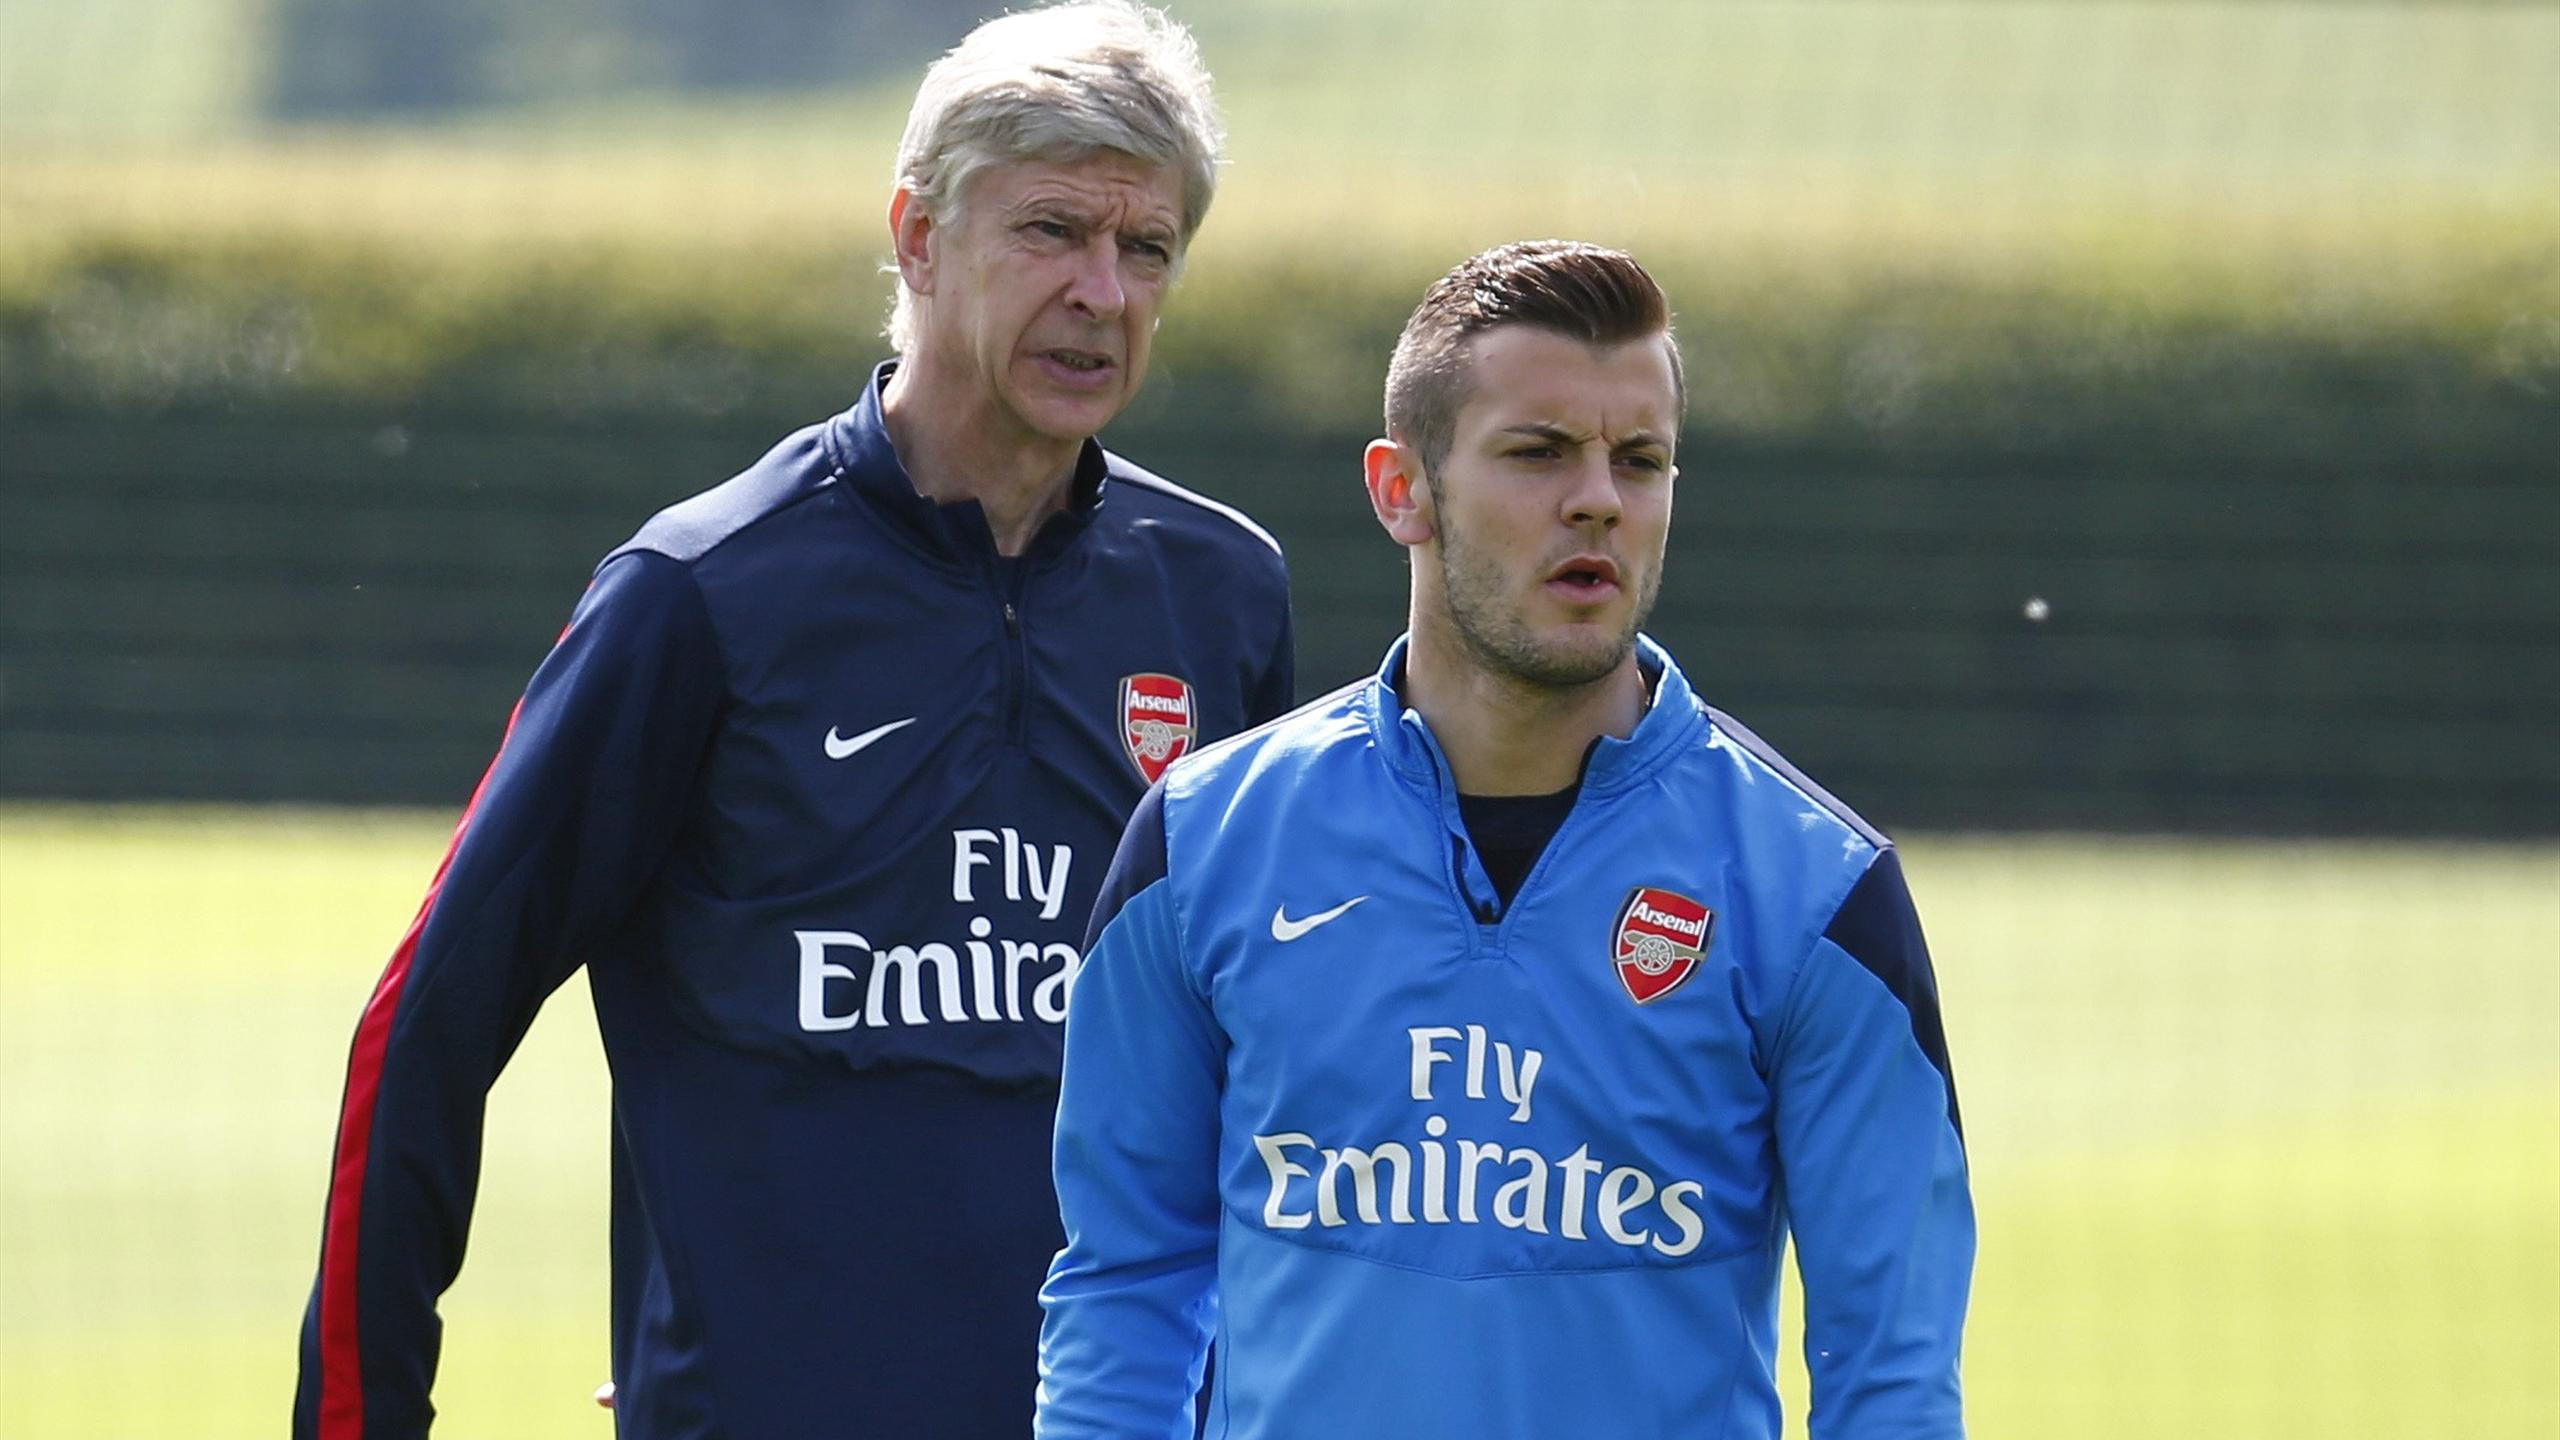 Arsenal manager Arsene Wenger and Jack Wilshere during a training session